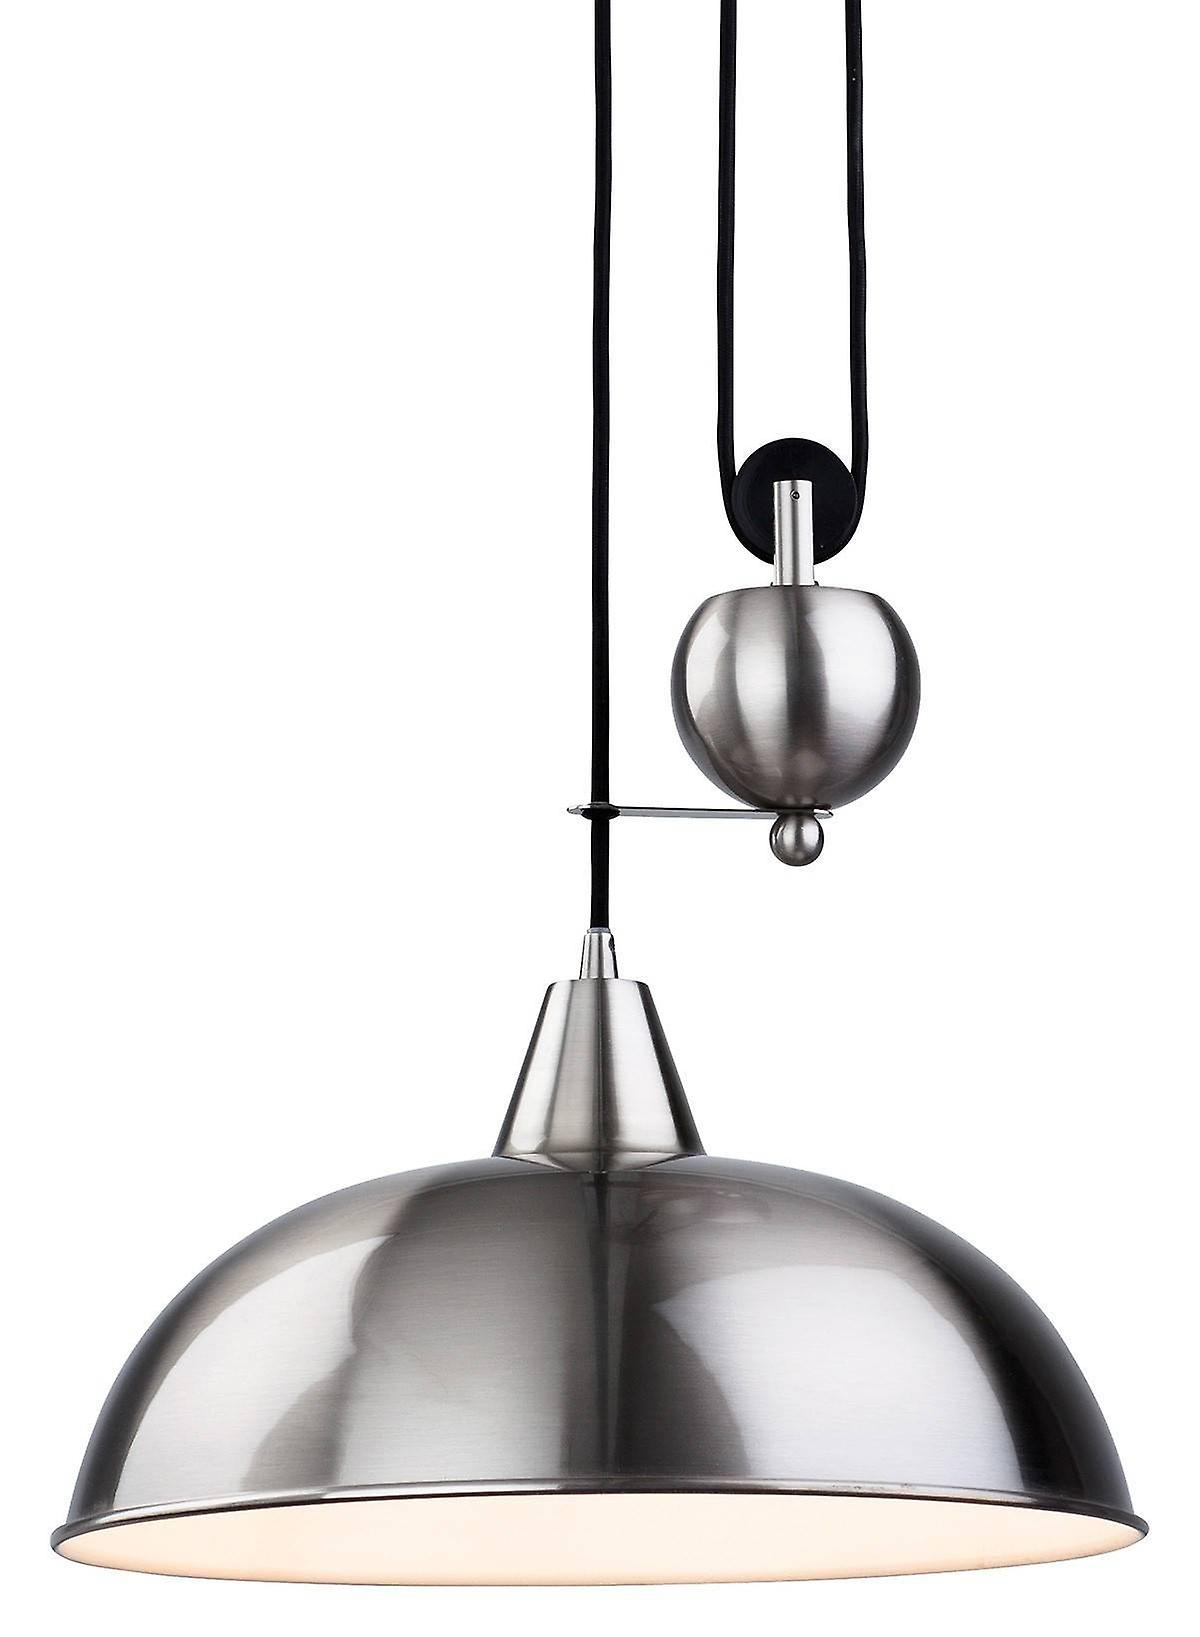 Firstlight Century - 1 Light Rise & Fall Dome Ceiling Pendant Brushed Steel, E27